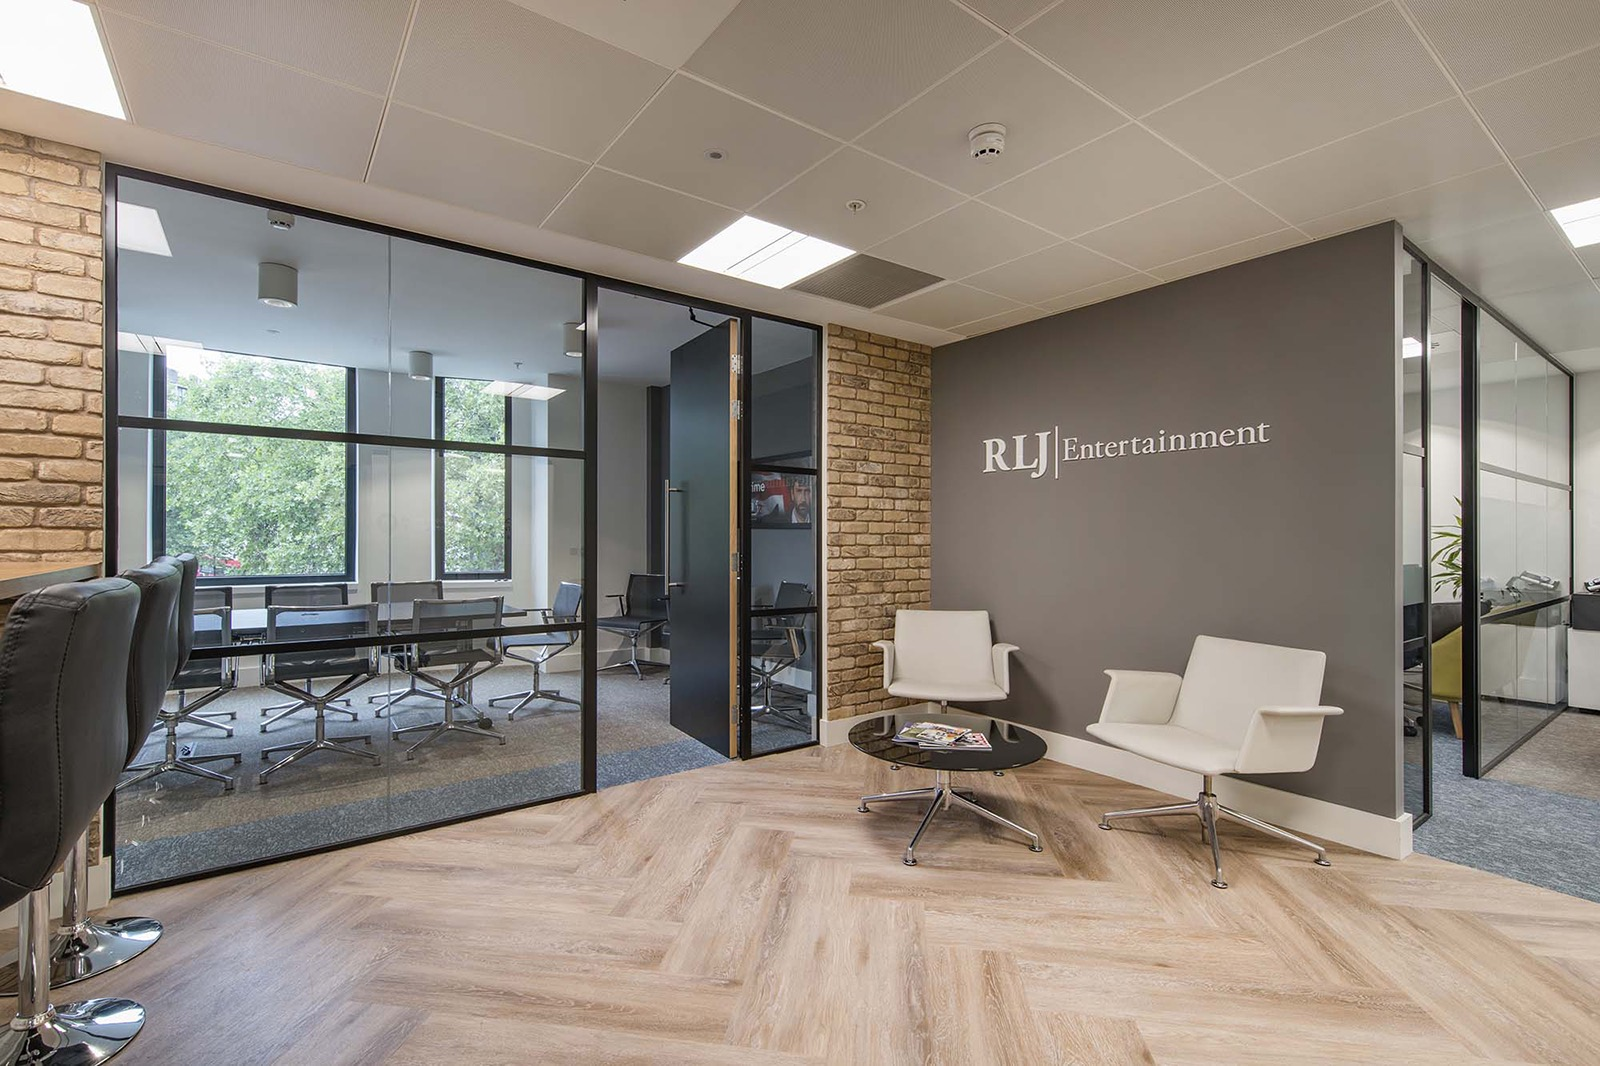 rlj-entertainment-london-office-1